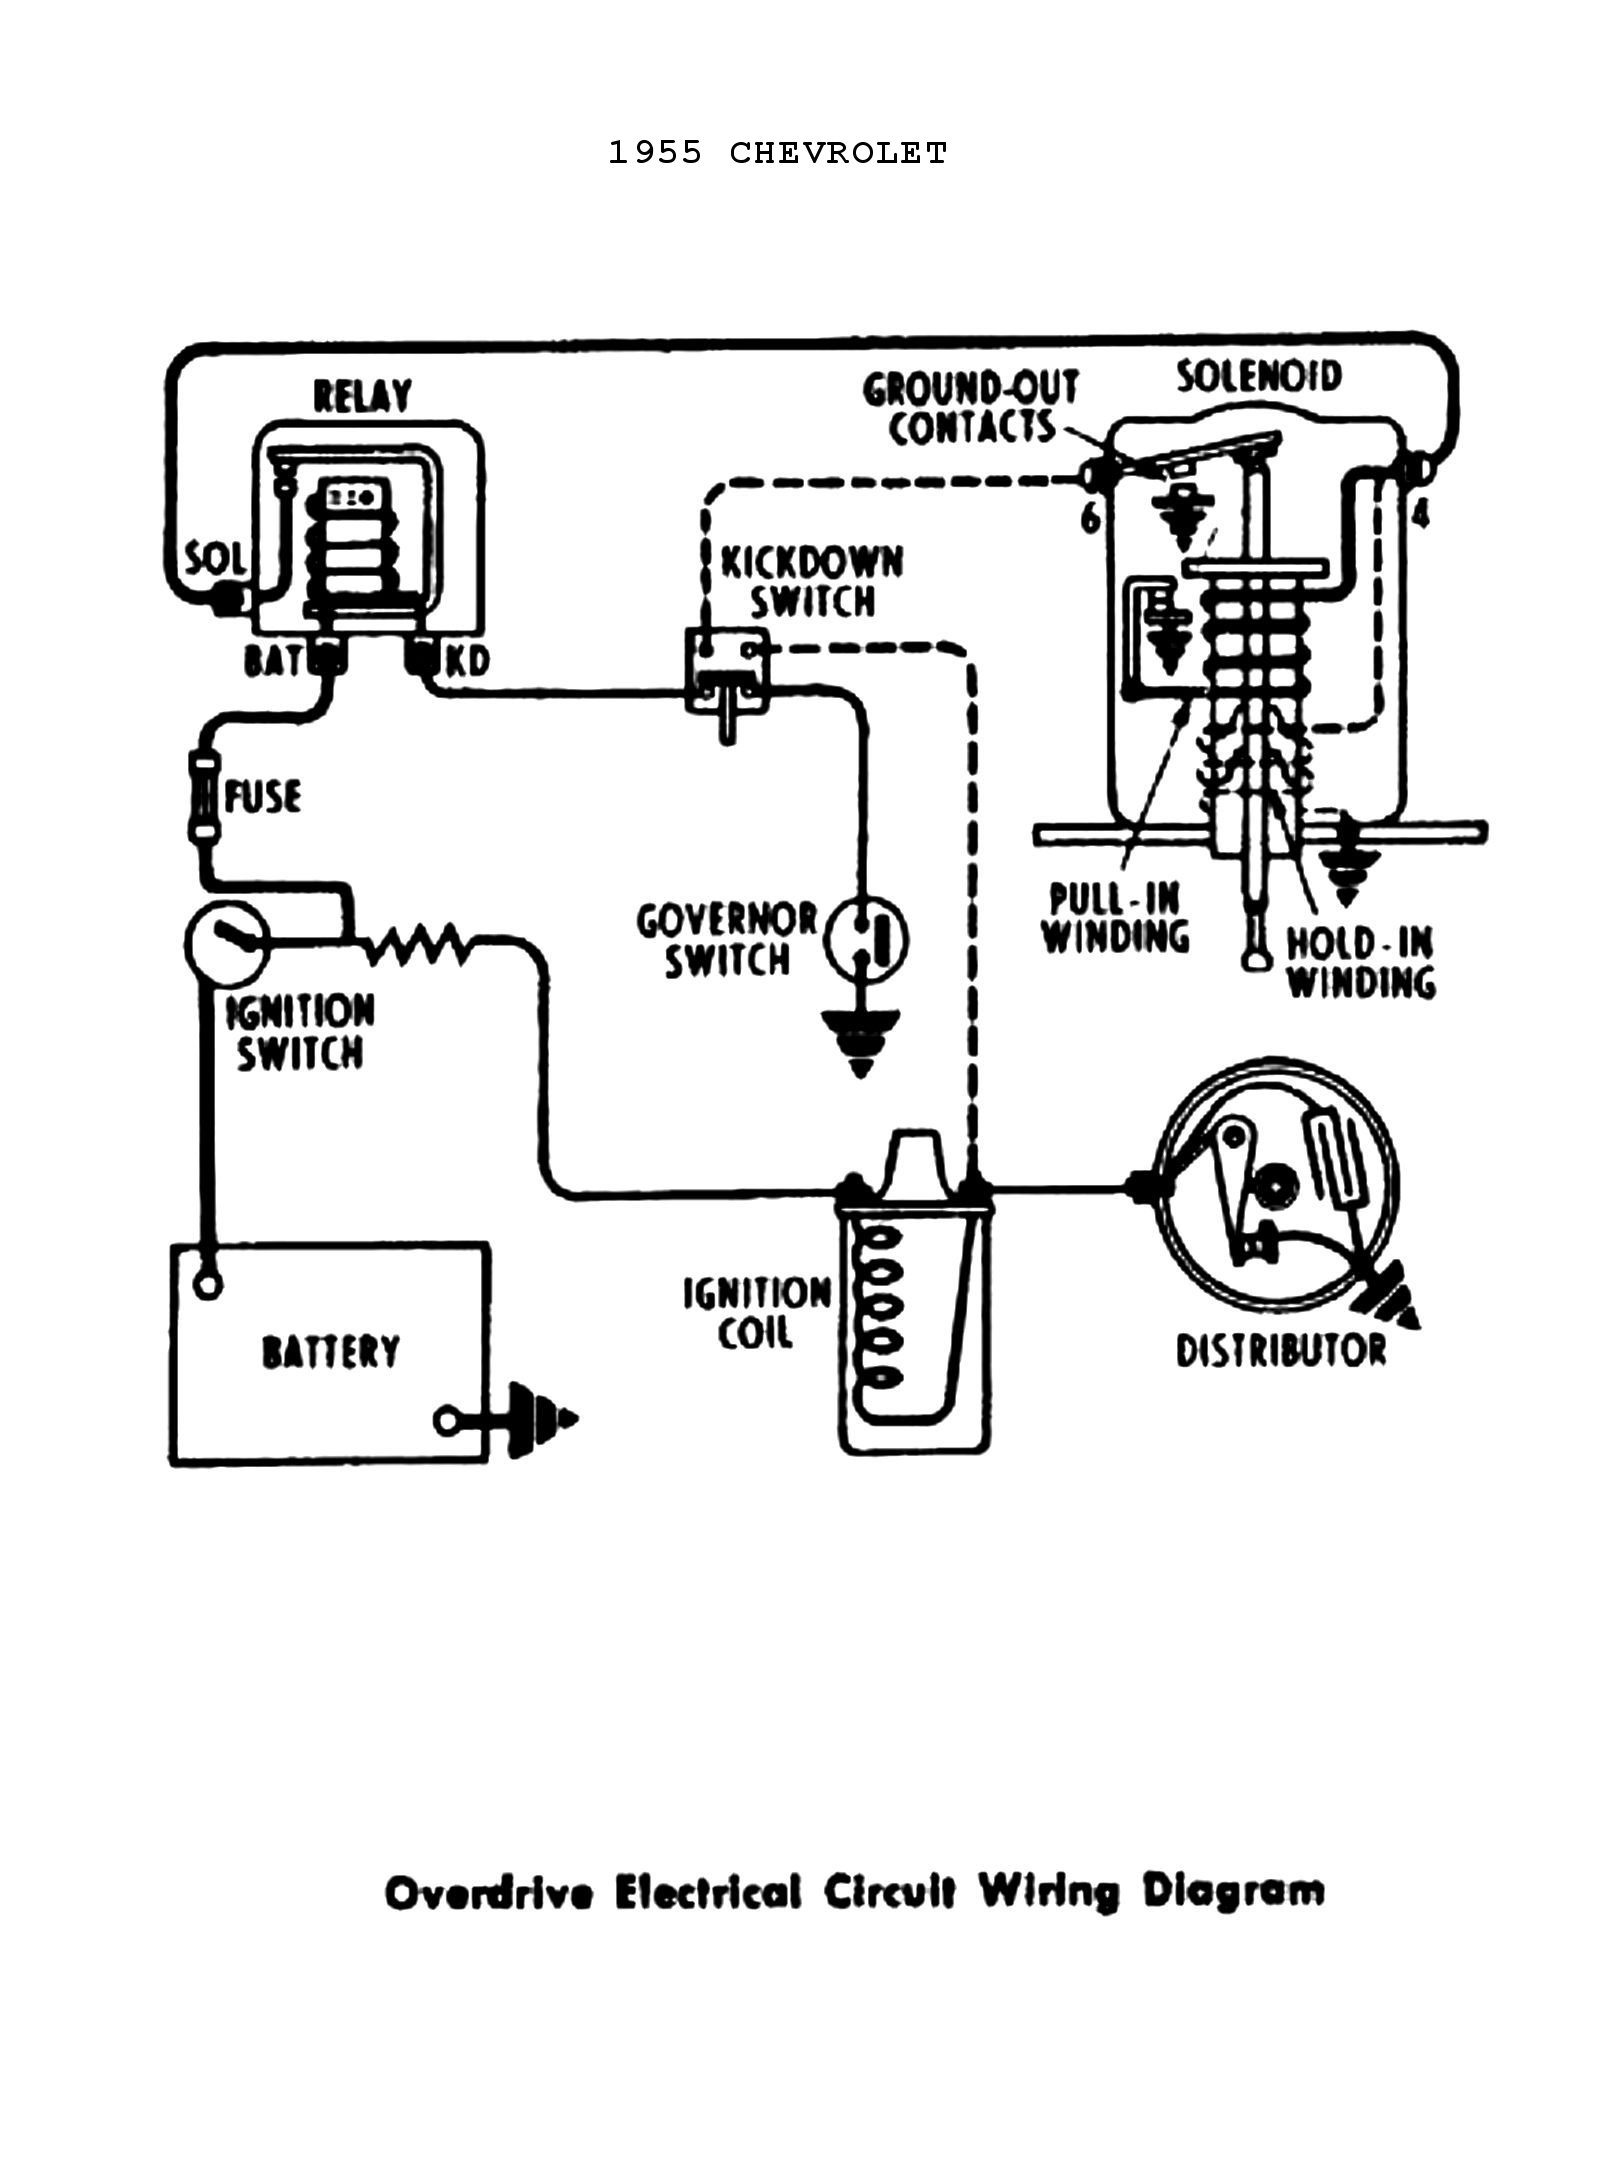 1950 Chevy Pickup Wiring Diagram Books Of Cfl42 Dimming Ballast Diagrams For 1957 Truck Just Data Rh Ag Skiphire Co Uk